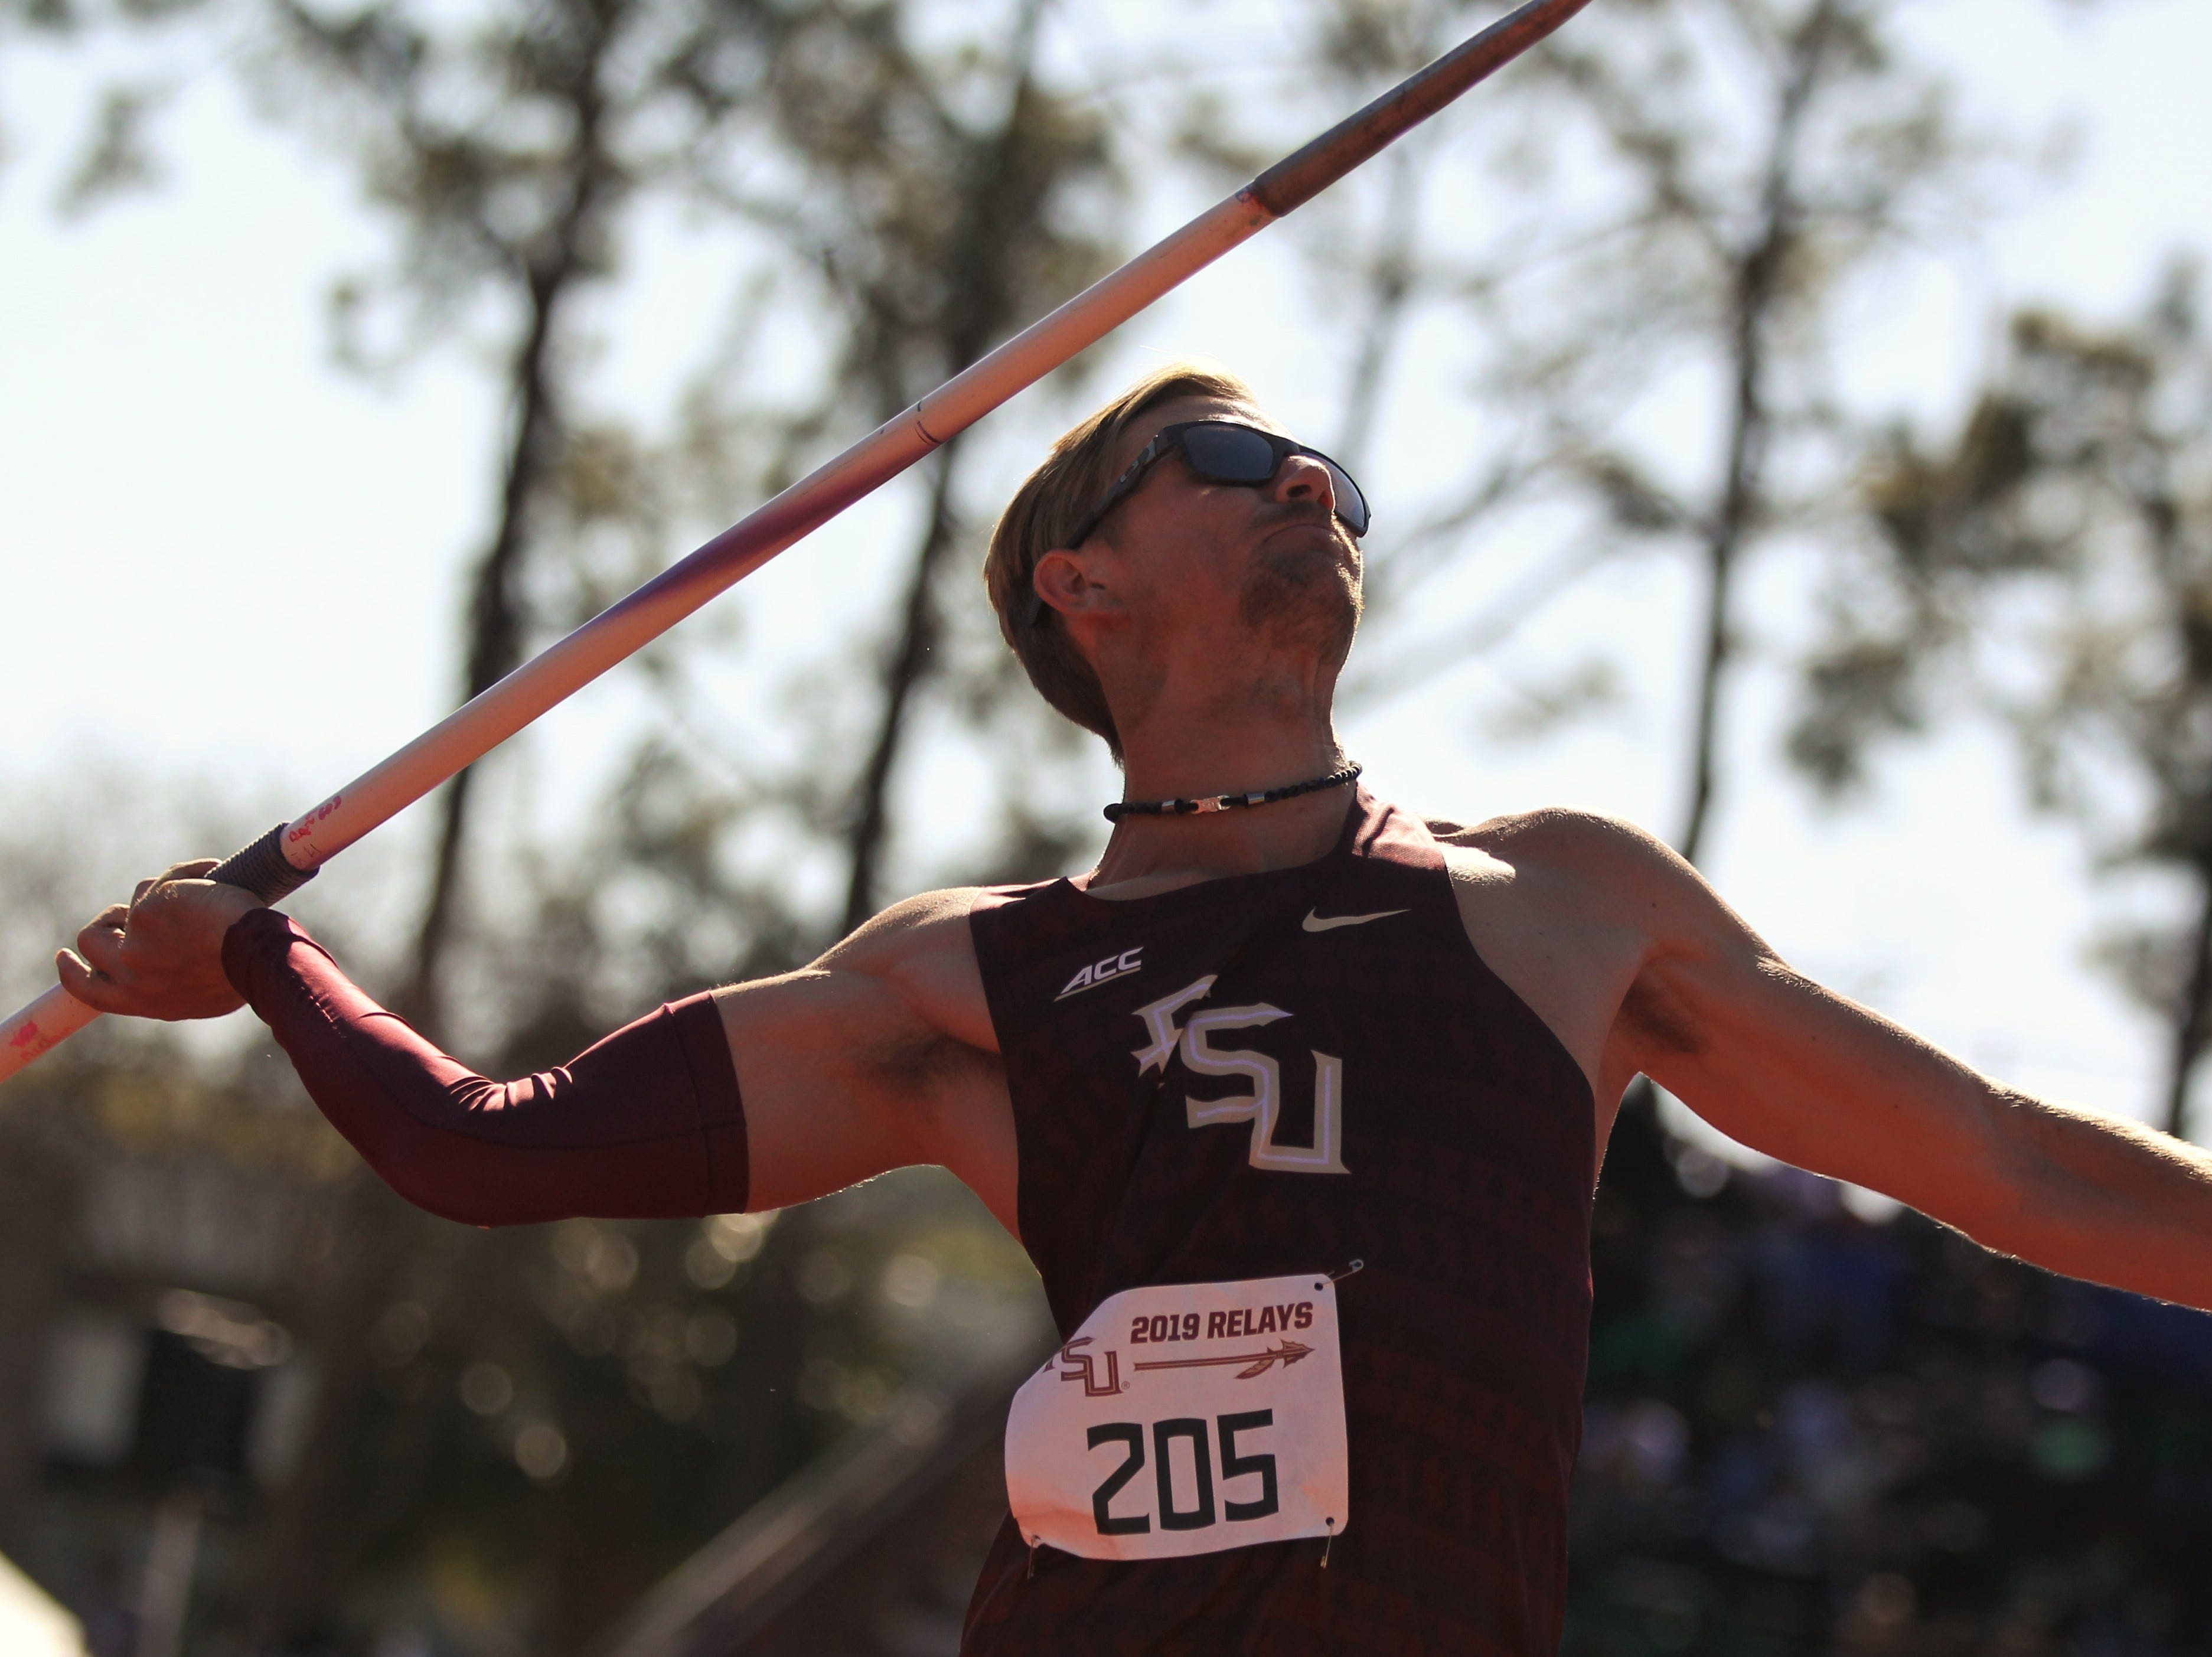 Florida State junior David Lott throws javelin during Friday's college portion of the FSU Relays at Mike Long Track on March 22, 2019.